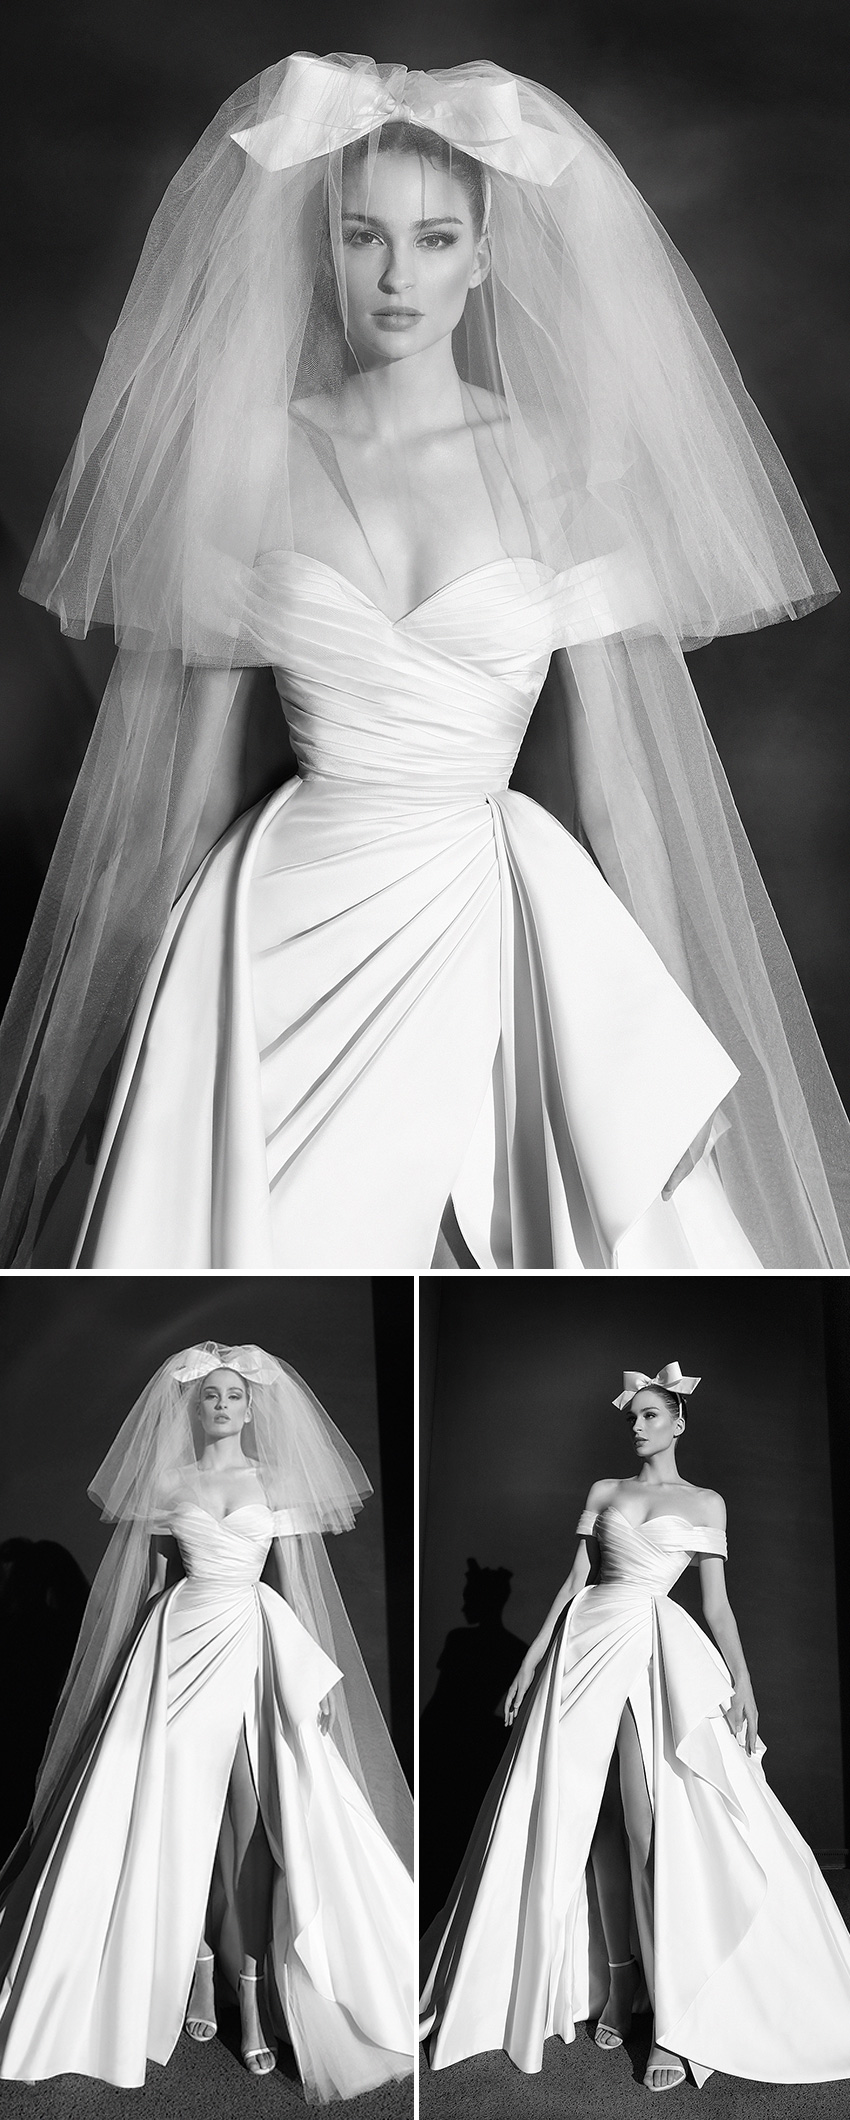 Zuhair Murad Spring 2022 bridal collection in Perfect Wedding Magazine